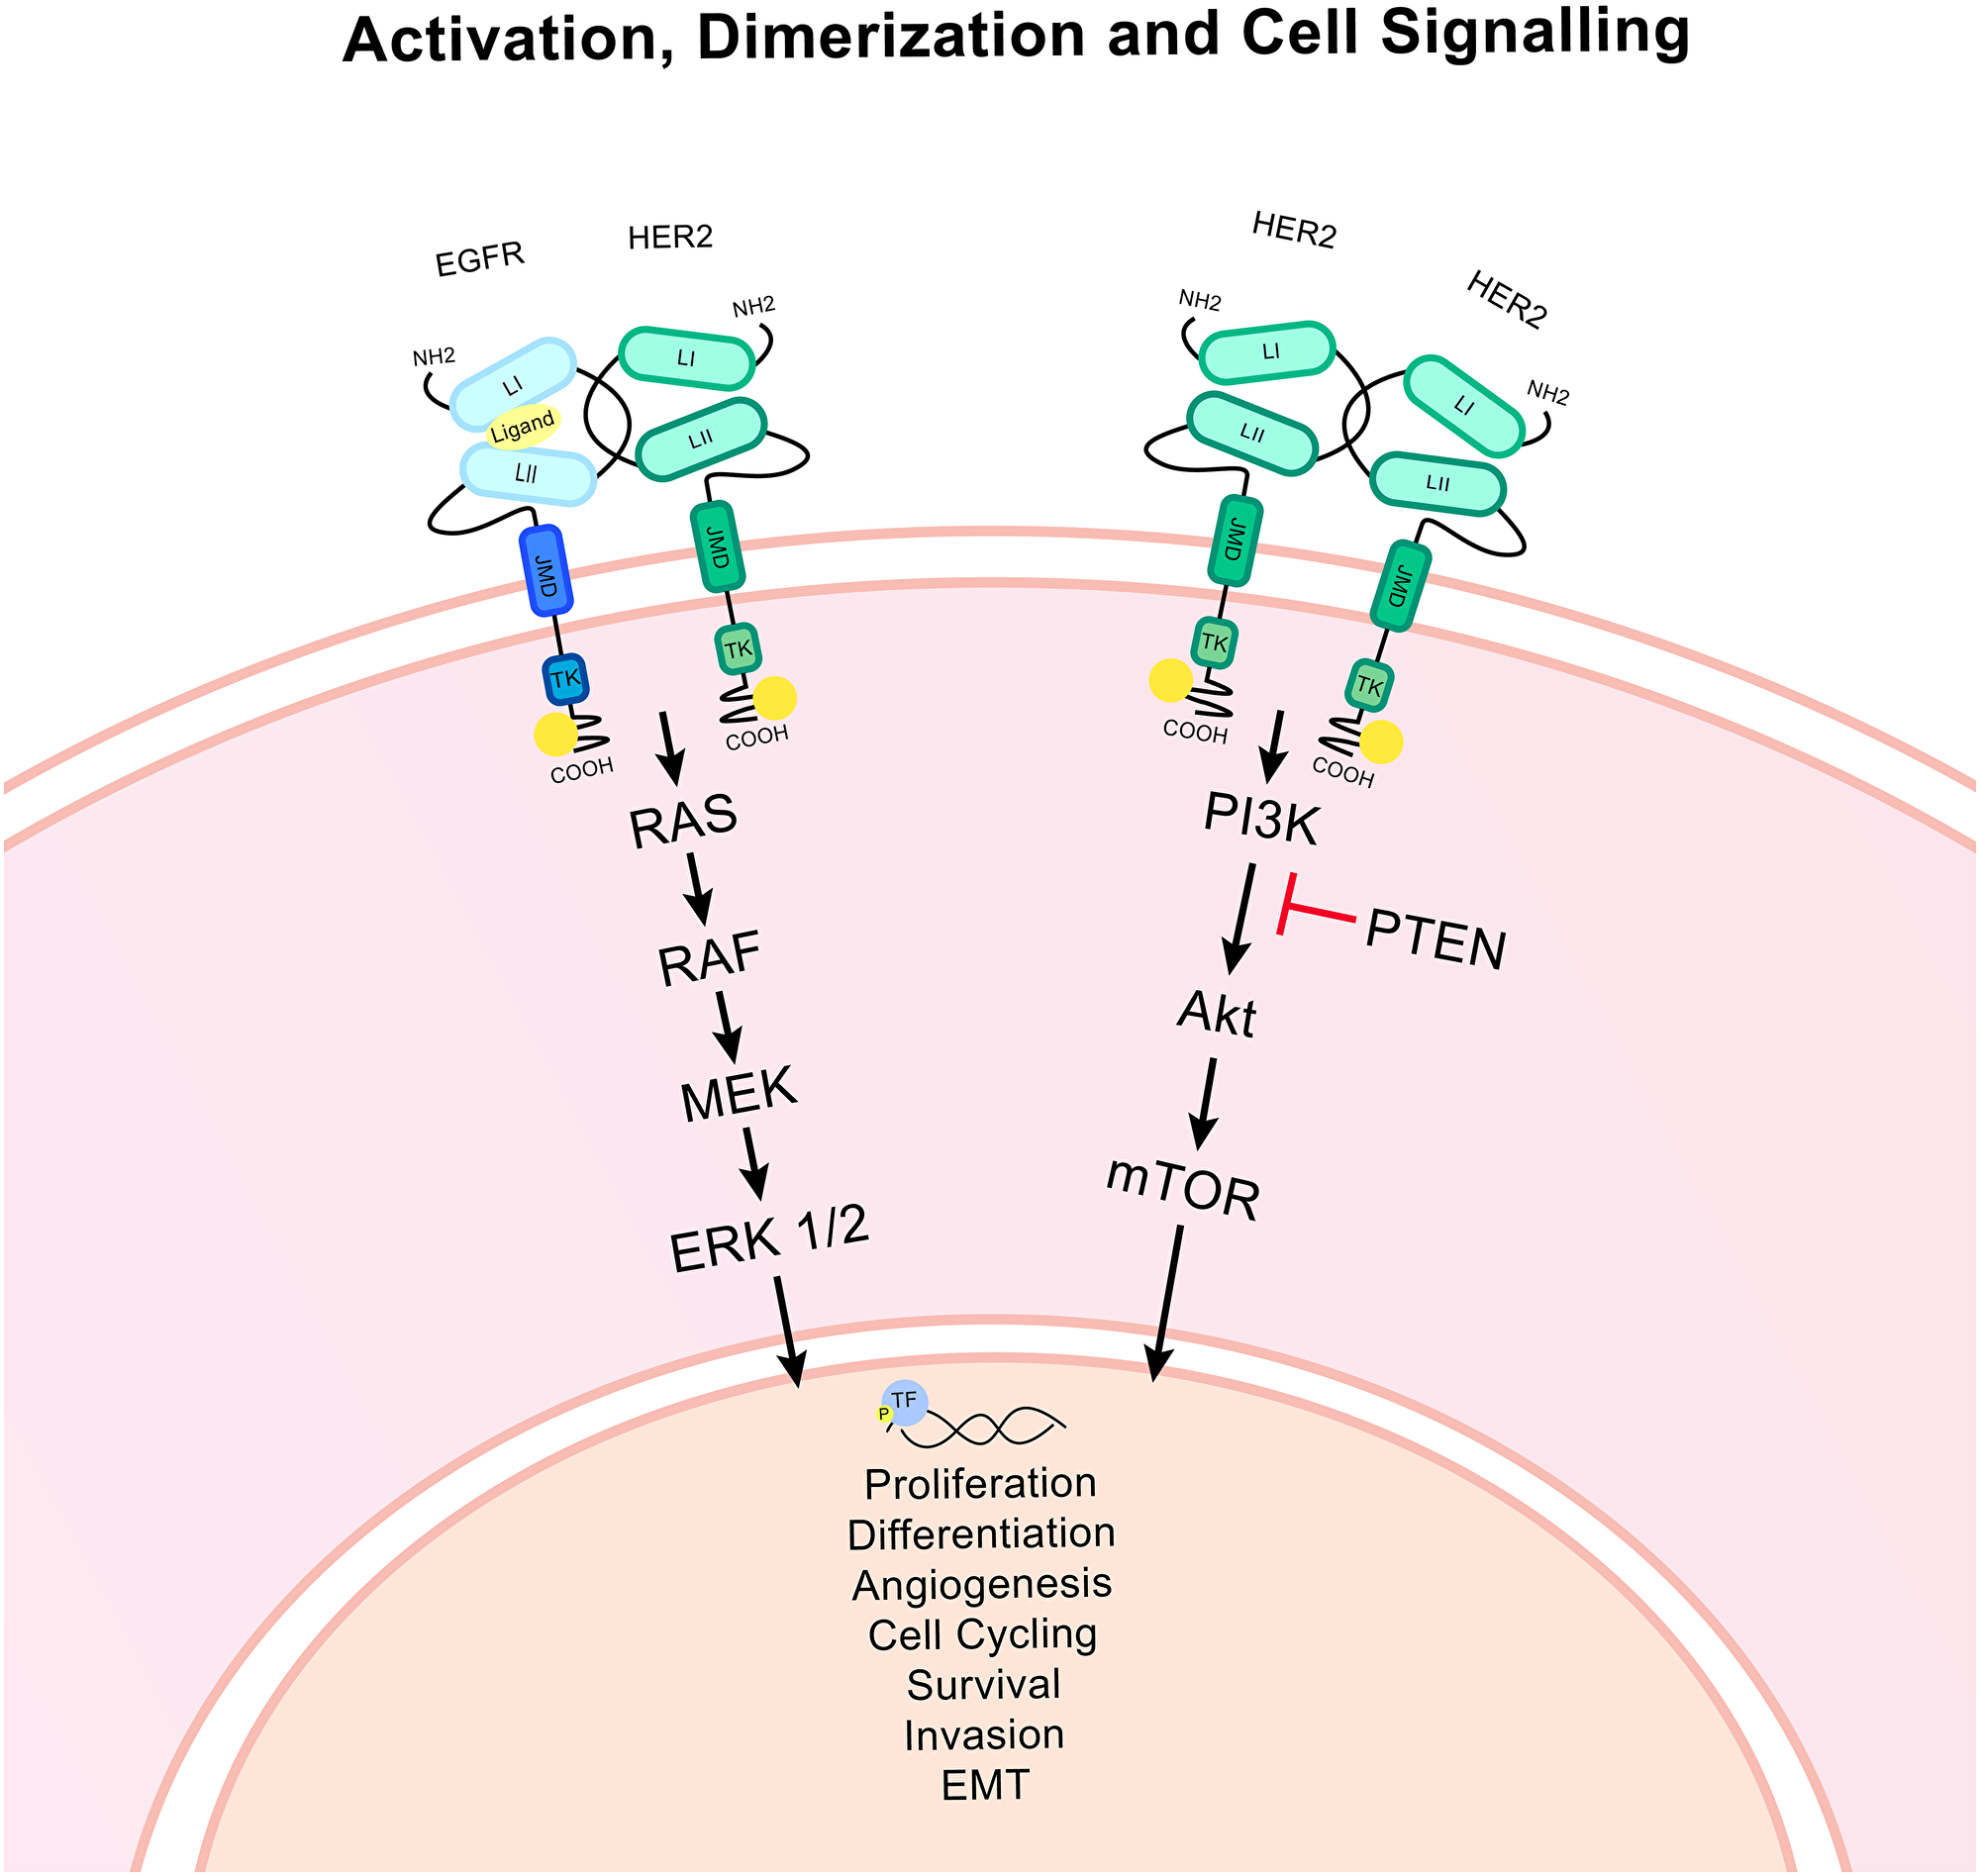 HER2 associated signalling pathways.